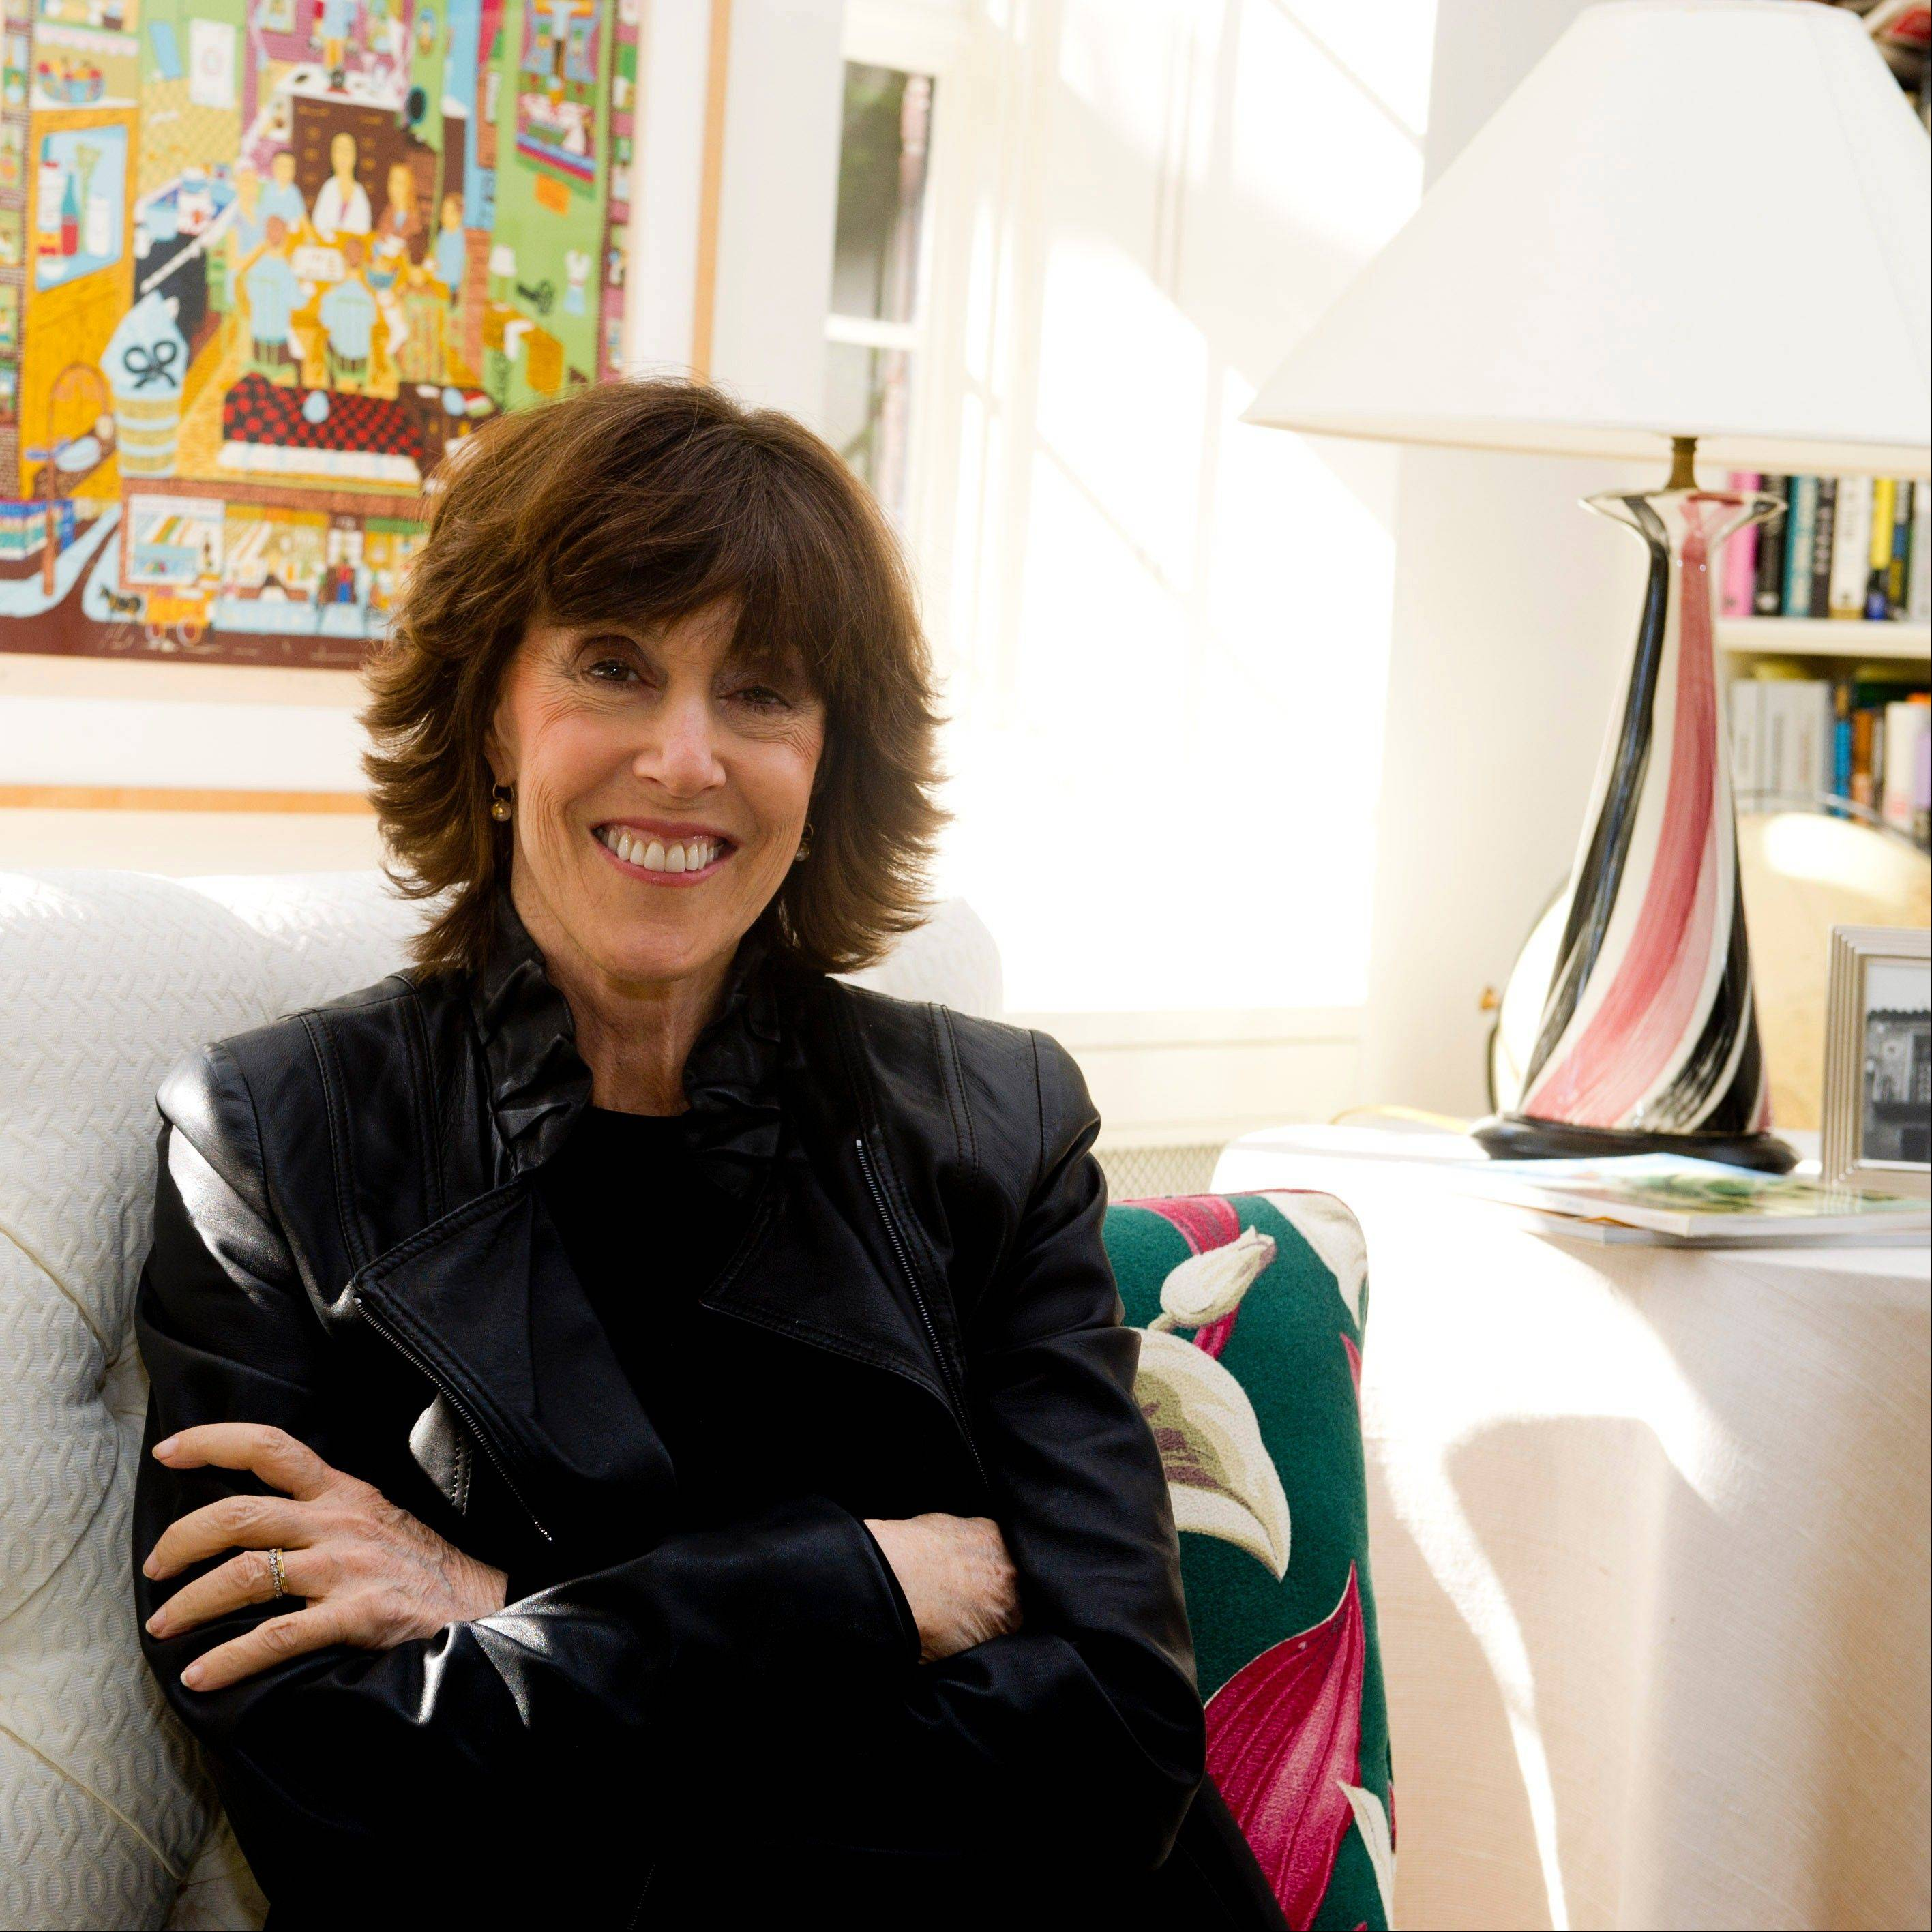 Nora Ephron, essayist, author and filmmaker who thrived in the male-dominated worlds of movies and journalism and was loved, respected and feared for her wit died at age 71 on June 26.